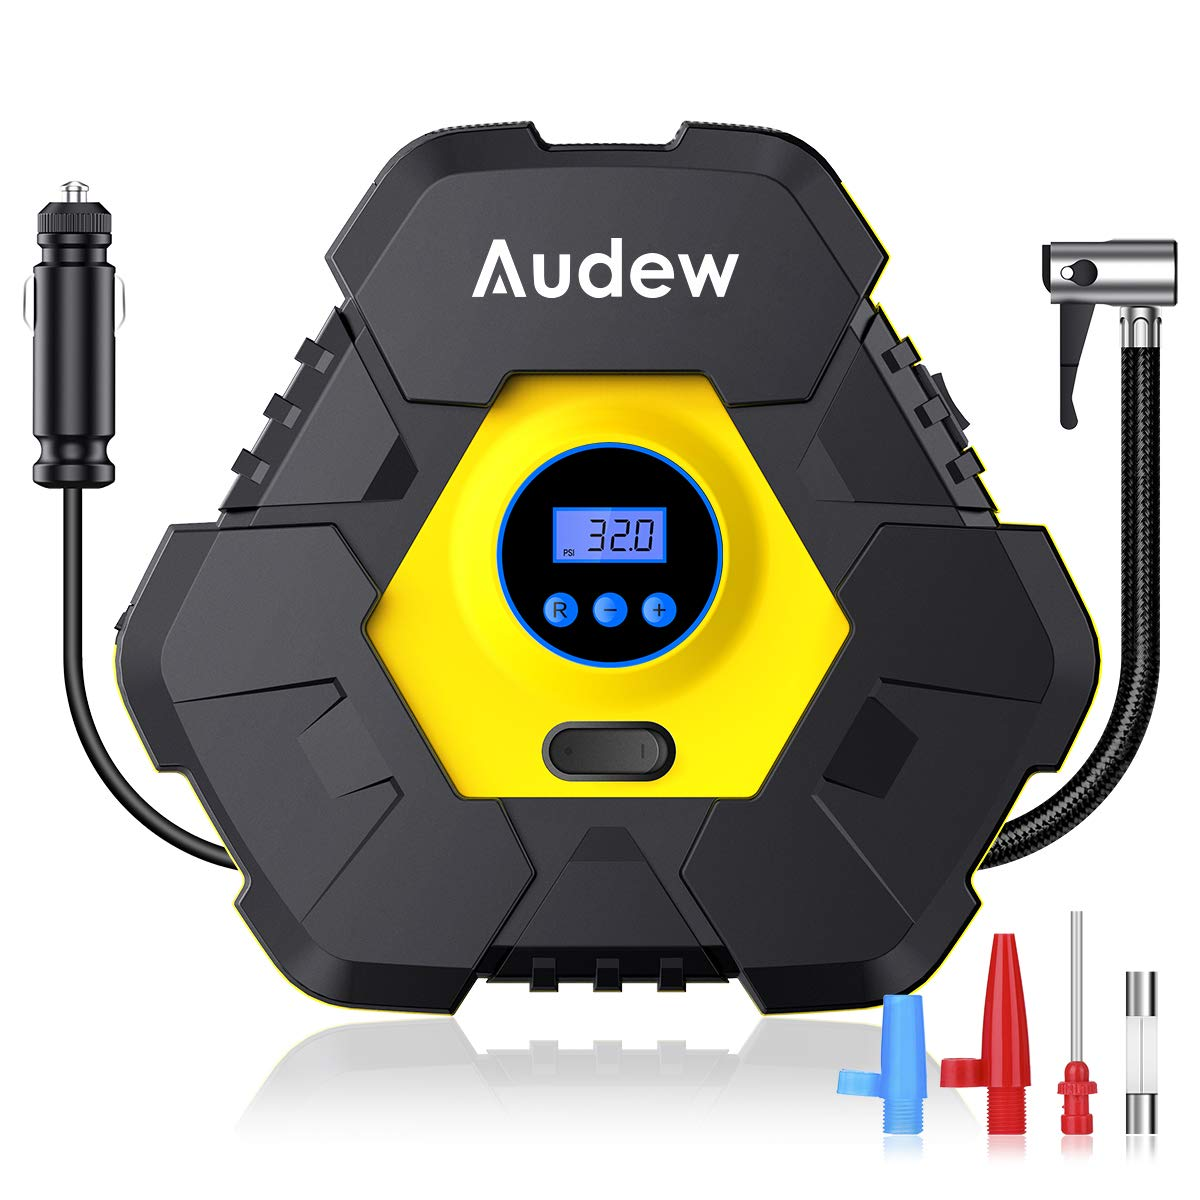 Audew Portable Compressor